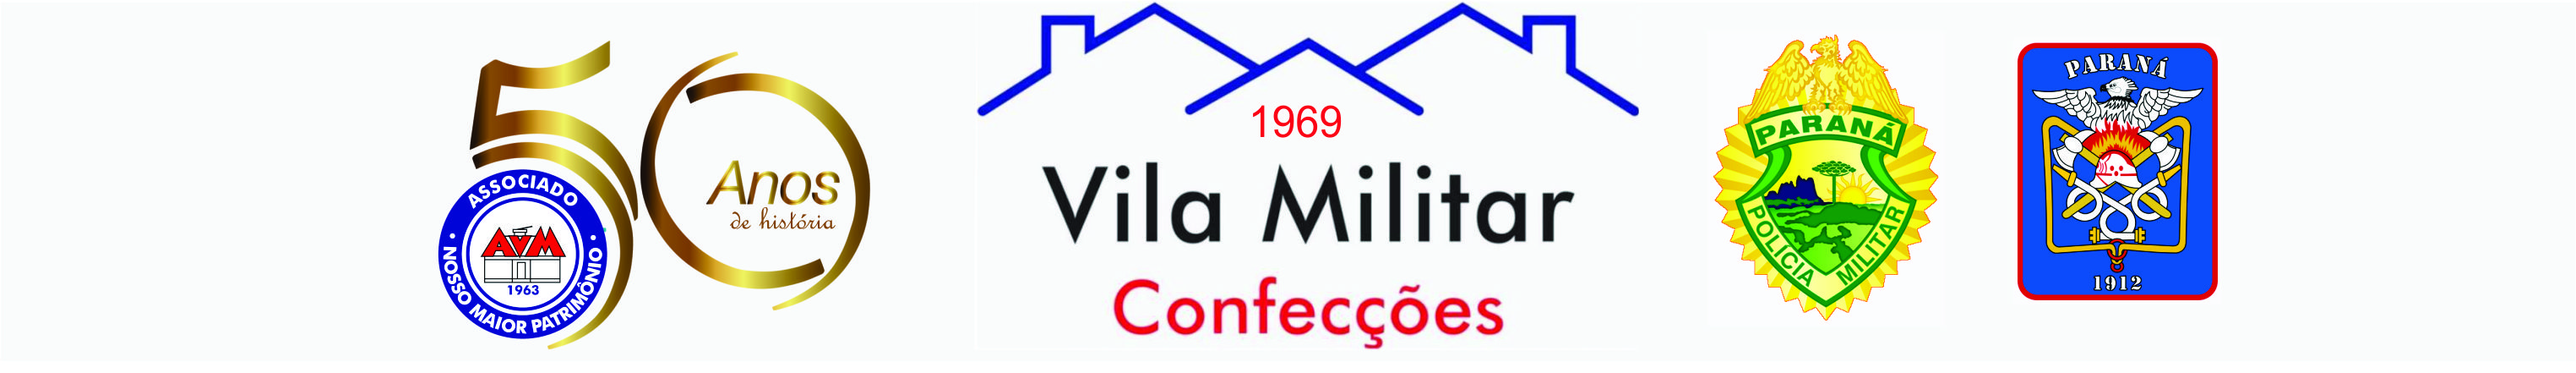 AVM Confecçoes